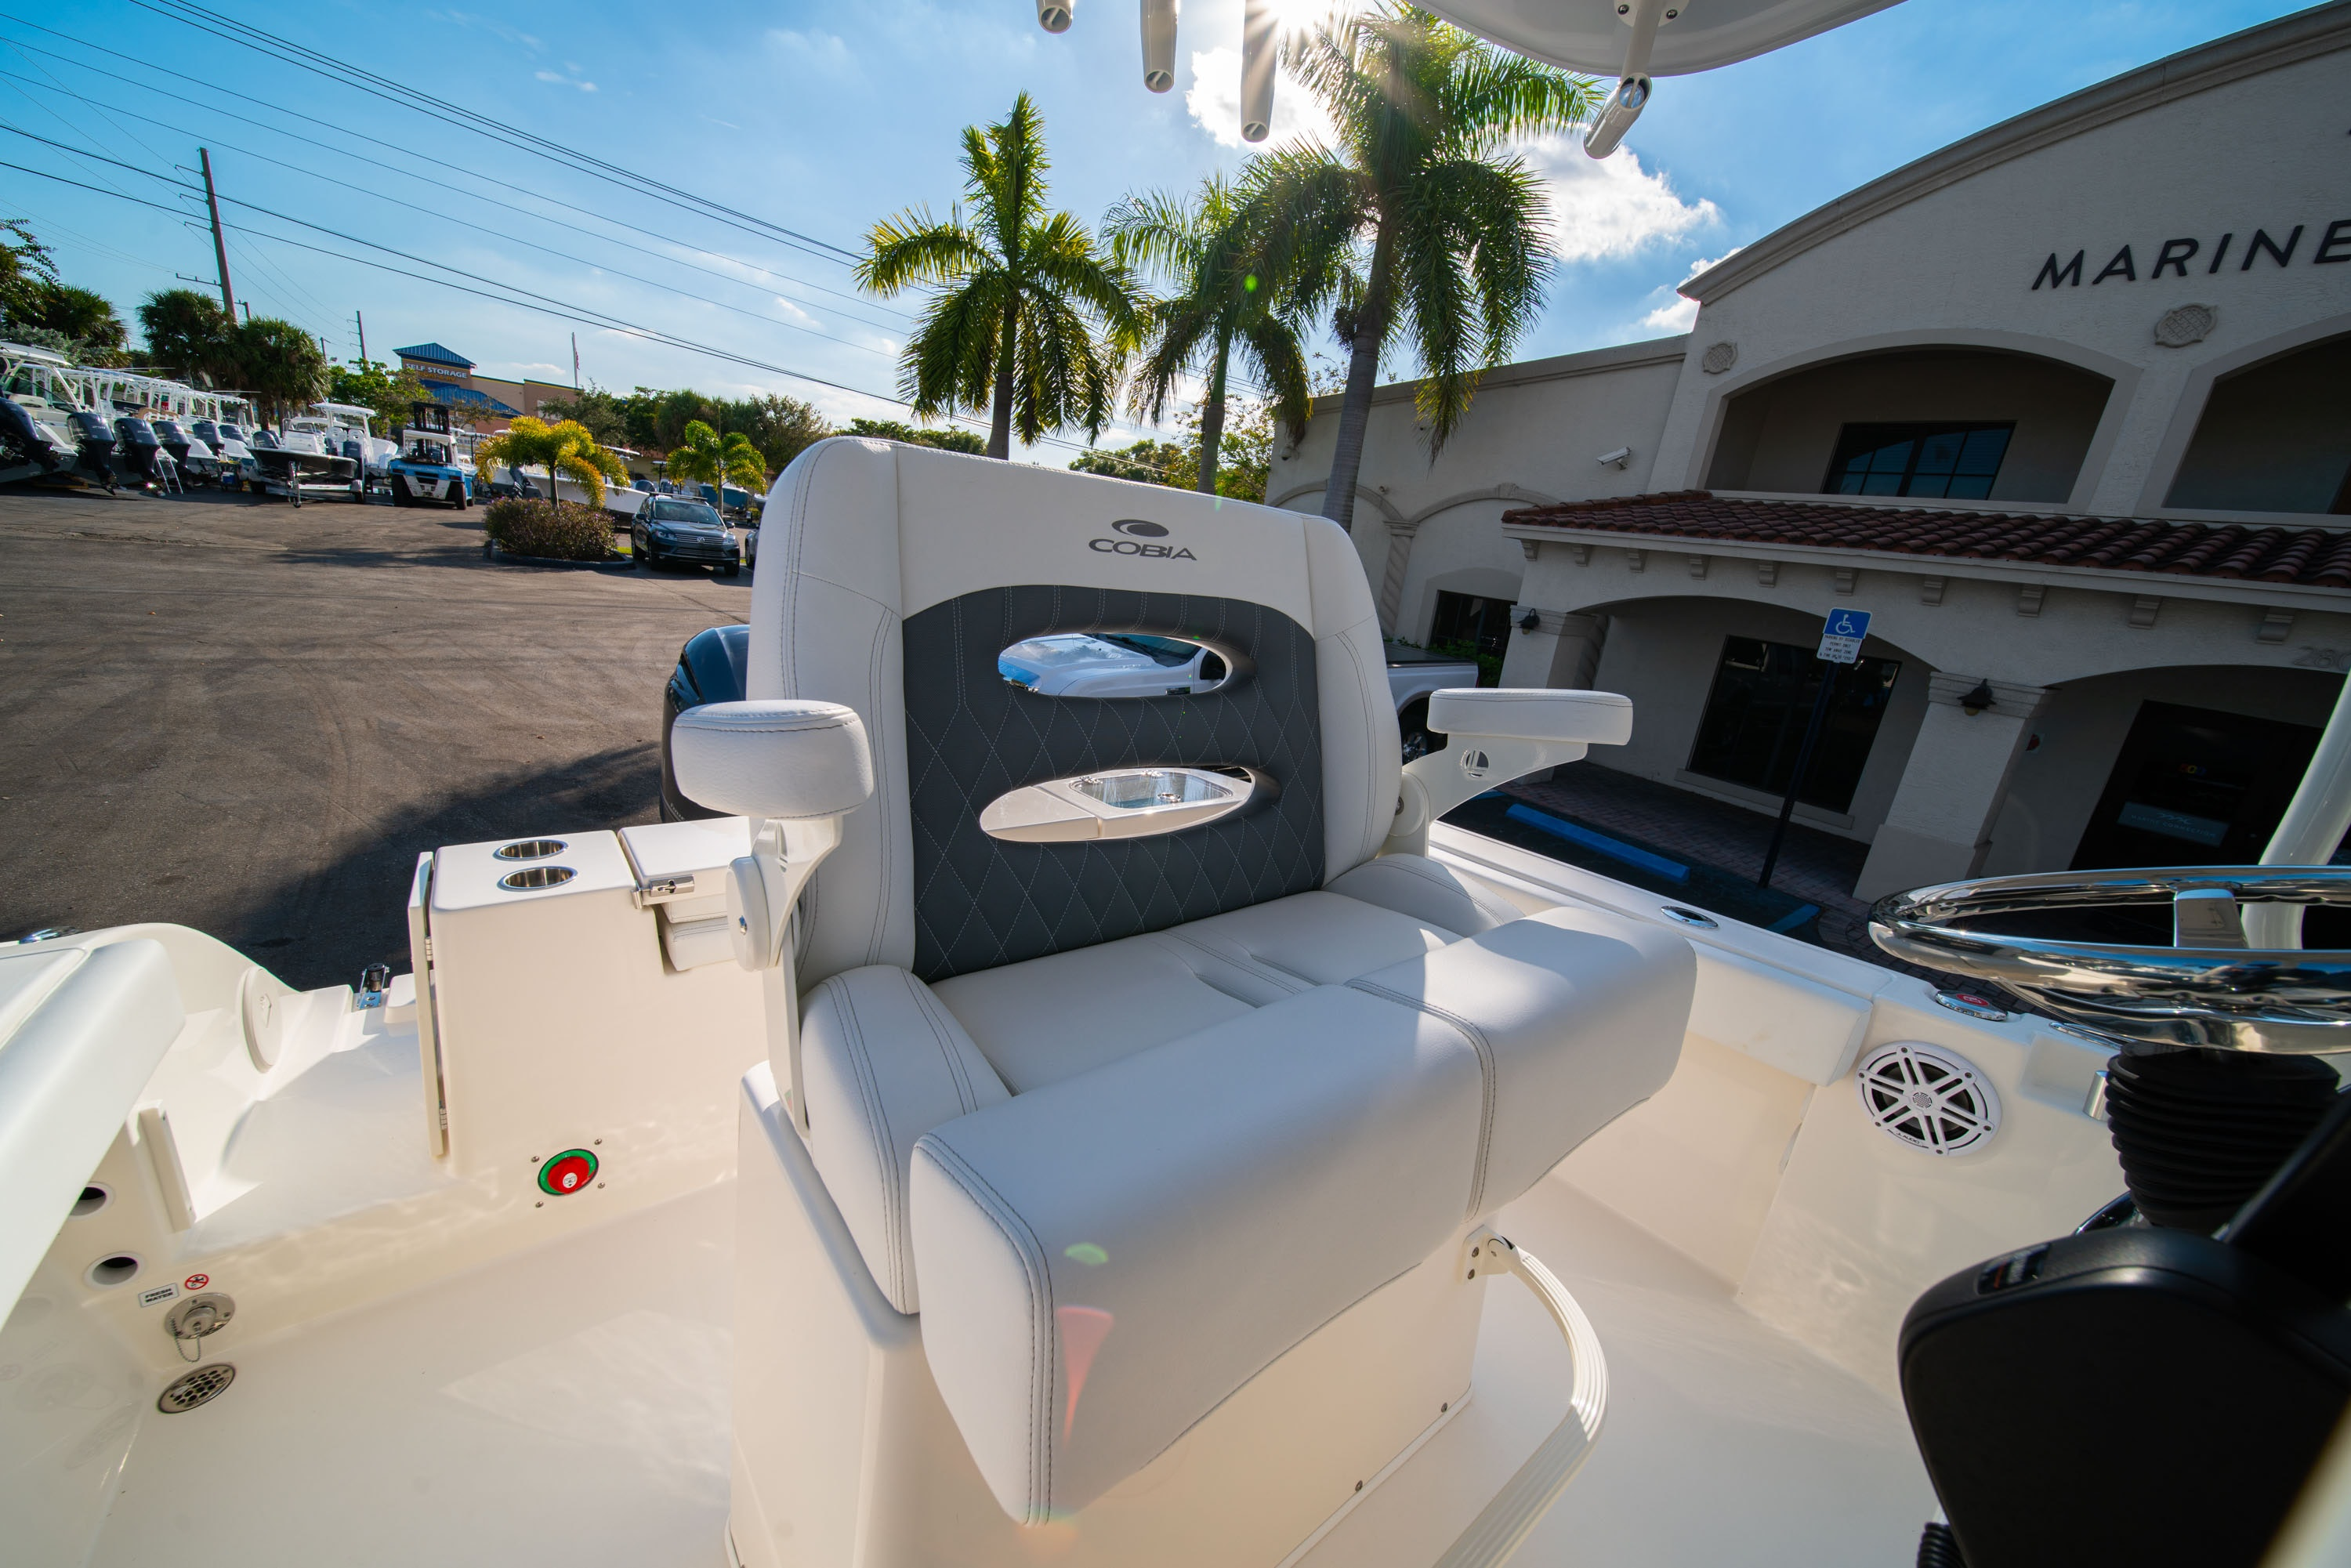 Thumbnail 27 for New 2020 Cobia 220 CC boat for sale in West Palm Beach, FL